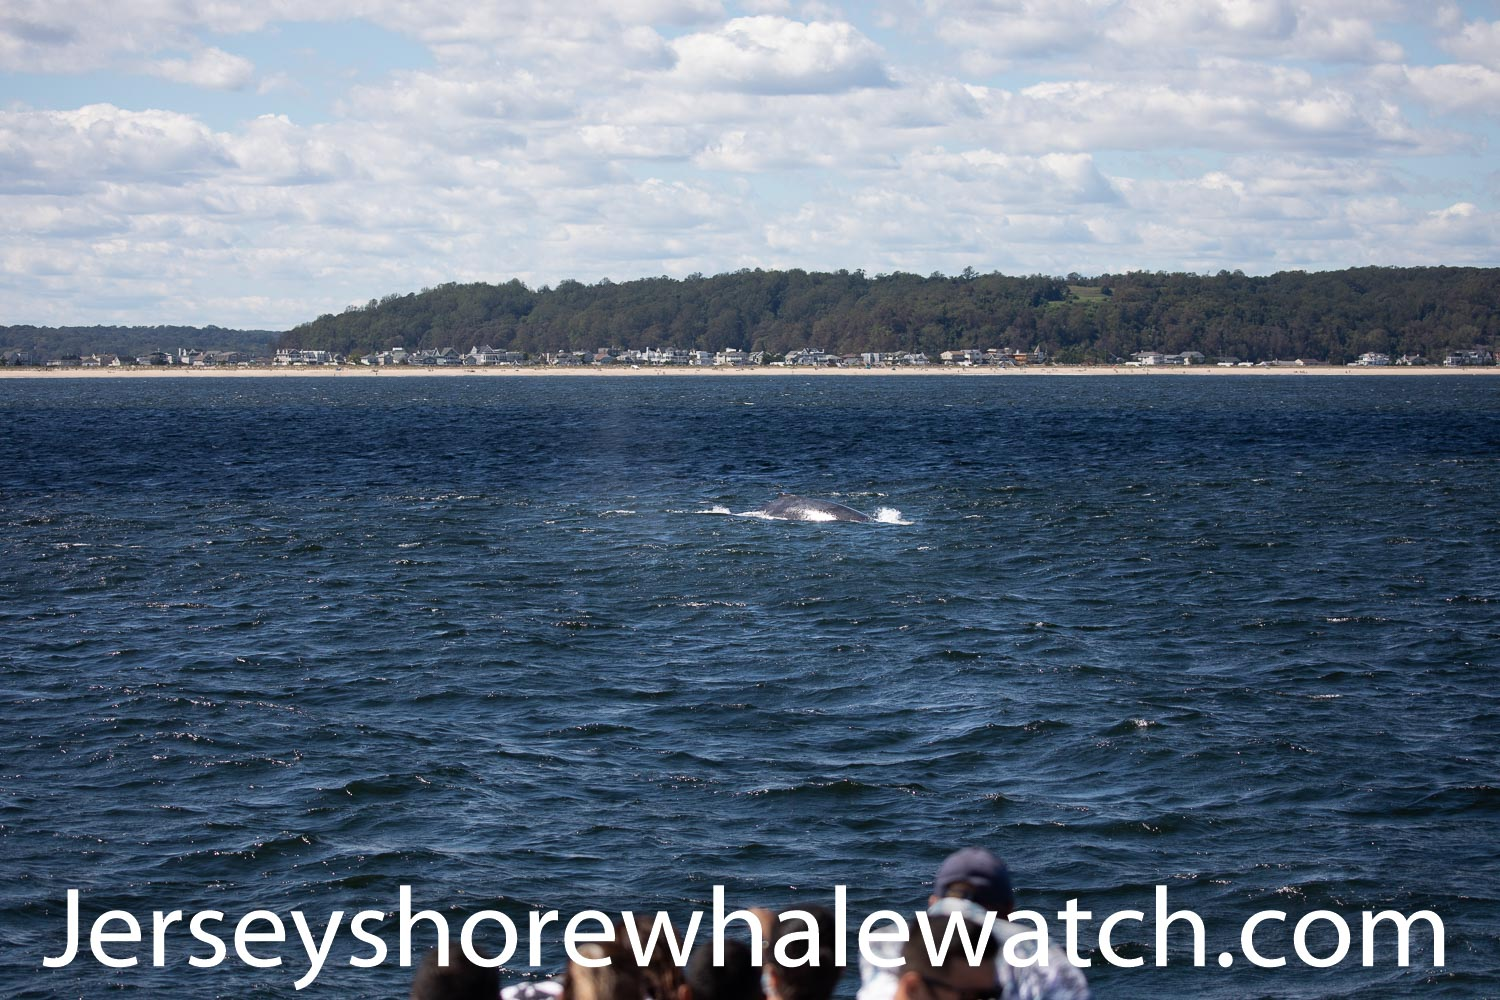 , Sunday August 30th Humpback whale, Jersey Shore Whale Watch Tour 2021 Season